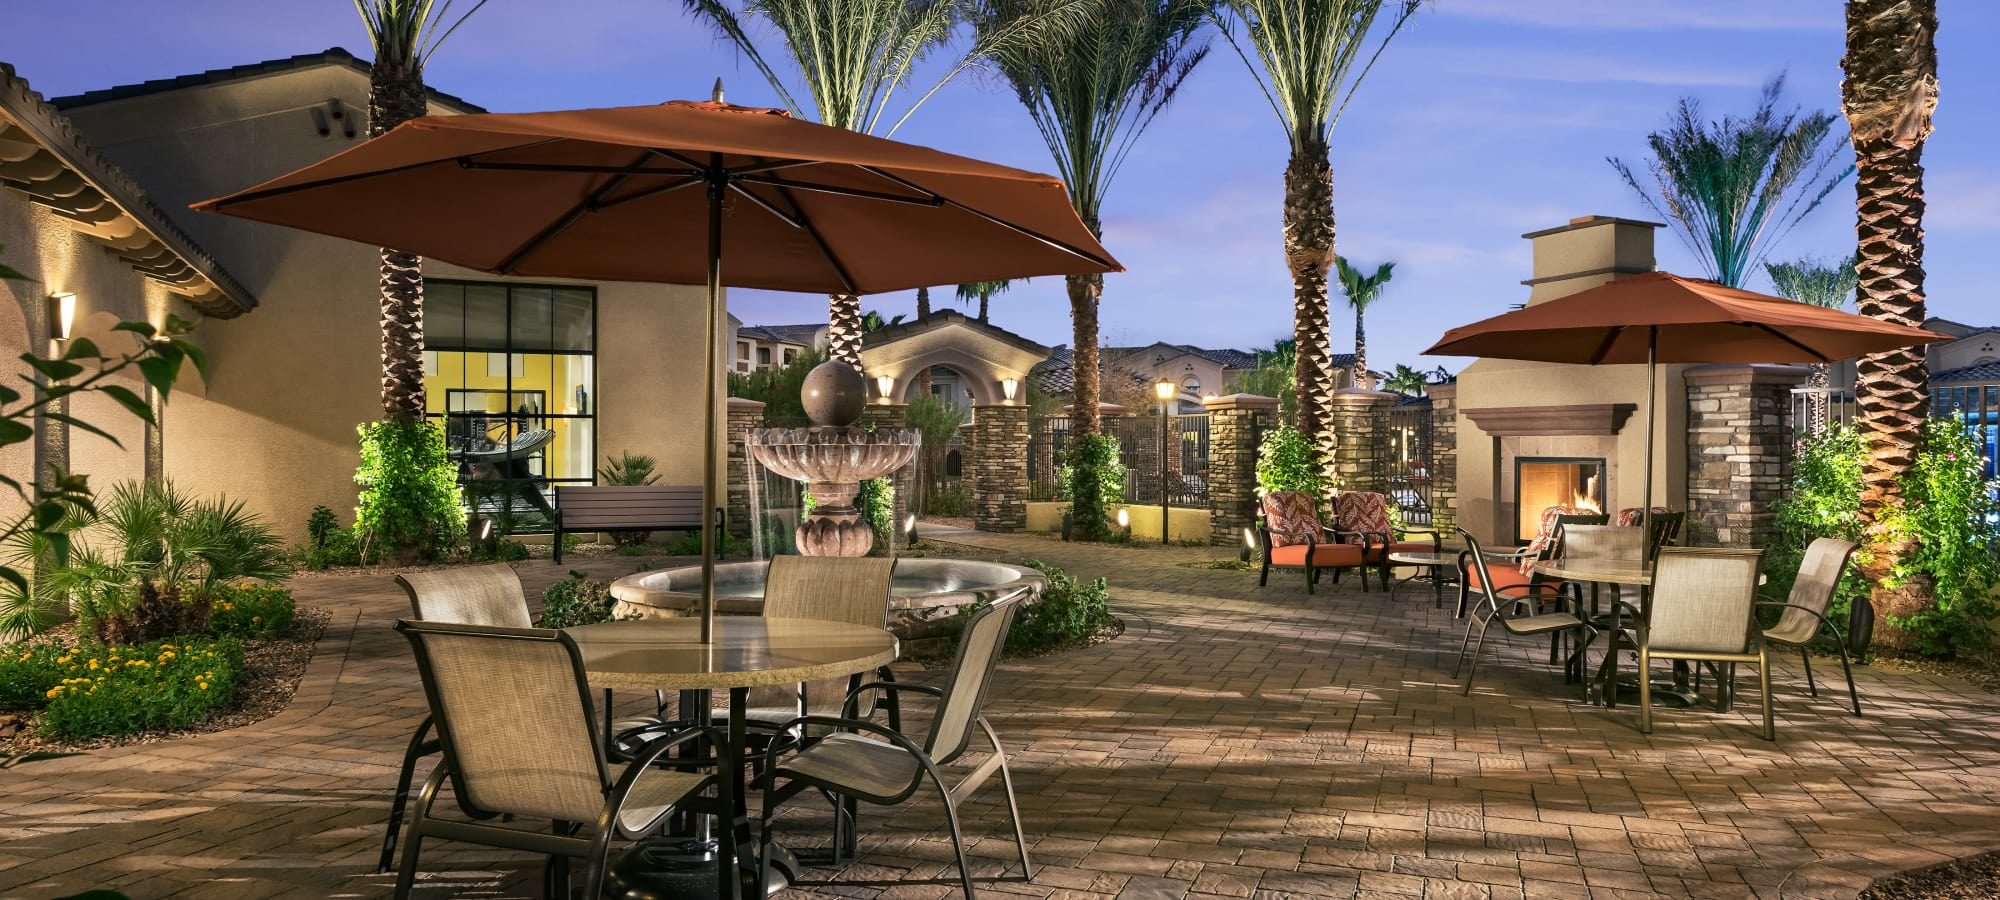 Outdoor community patio at San Posada in Mesa, Arizona